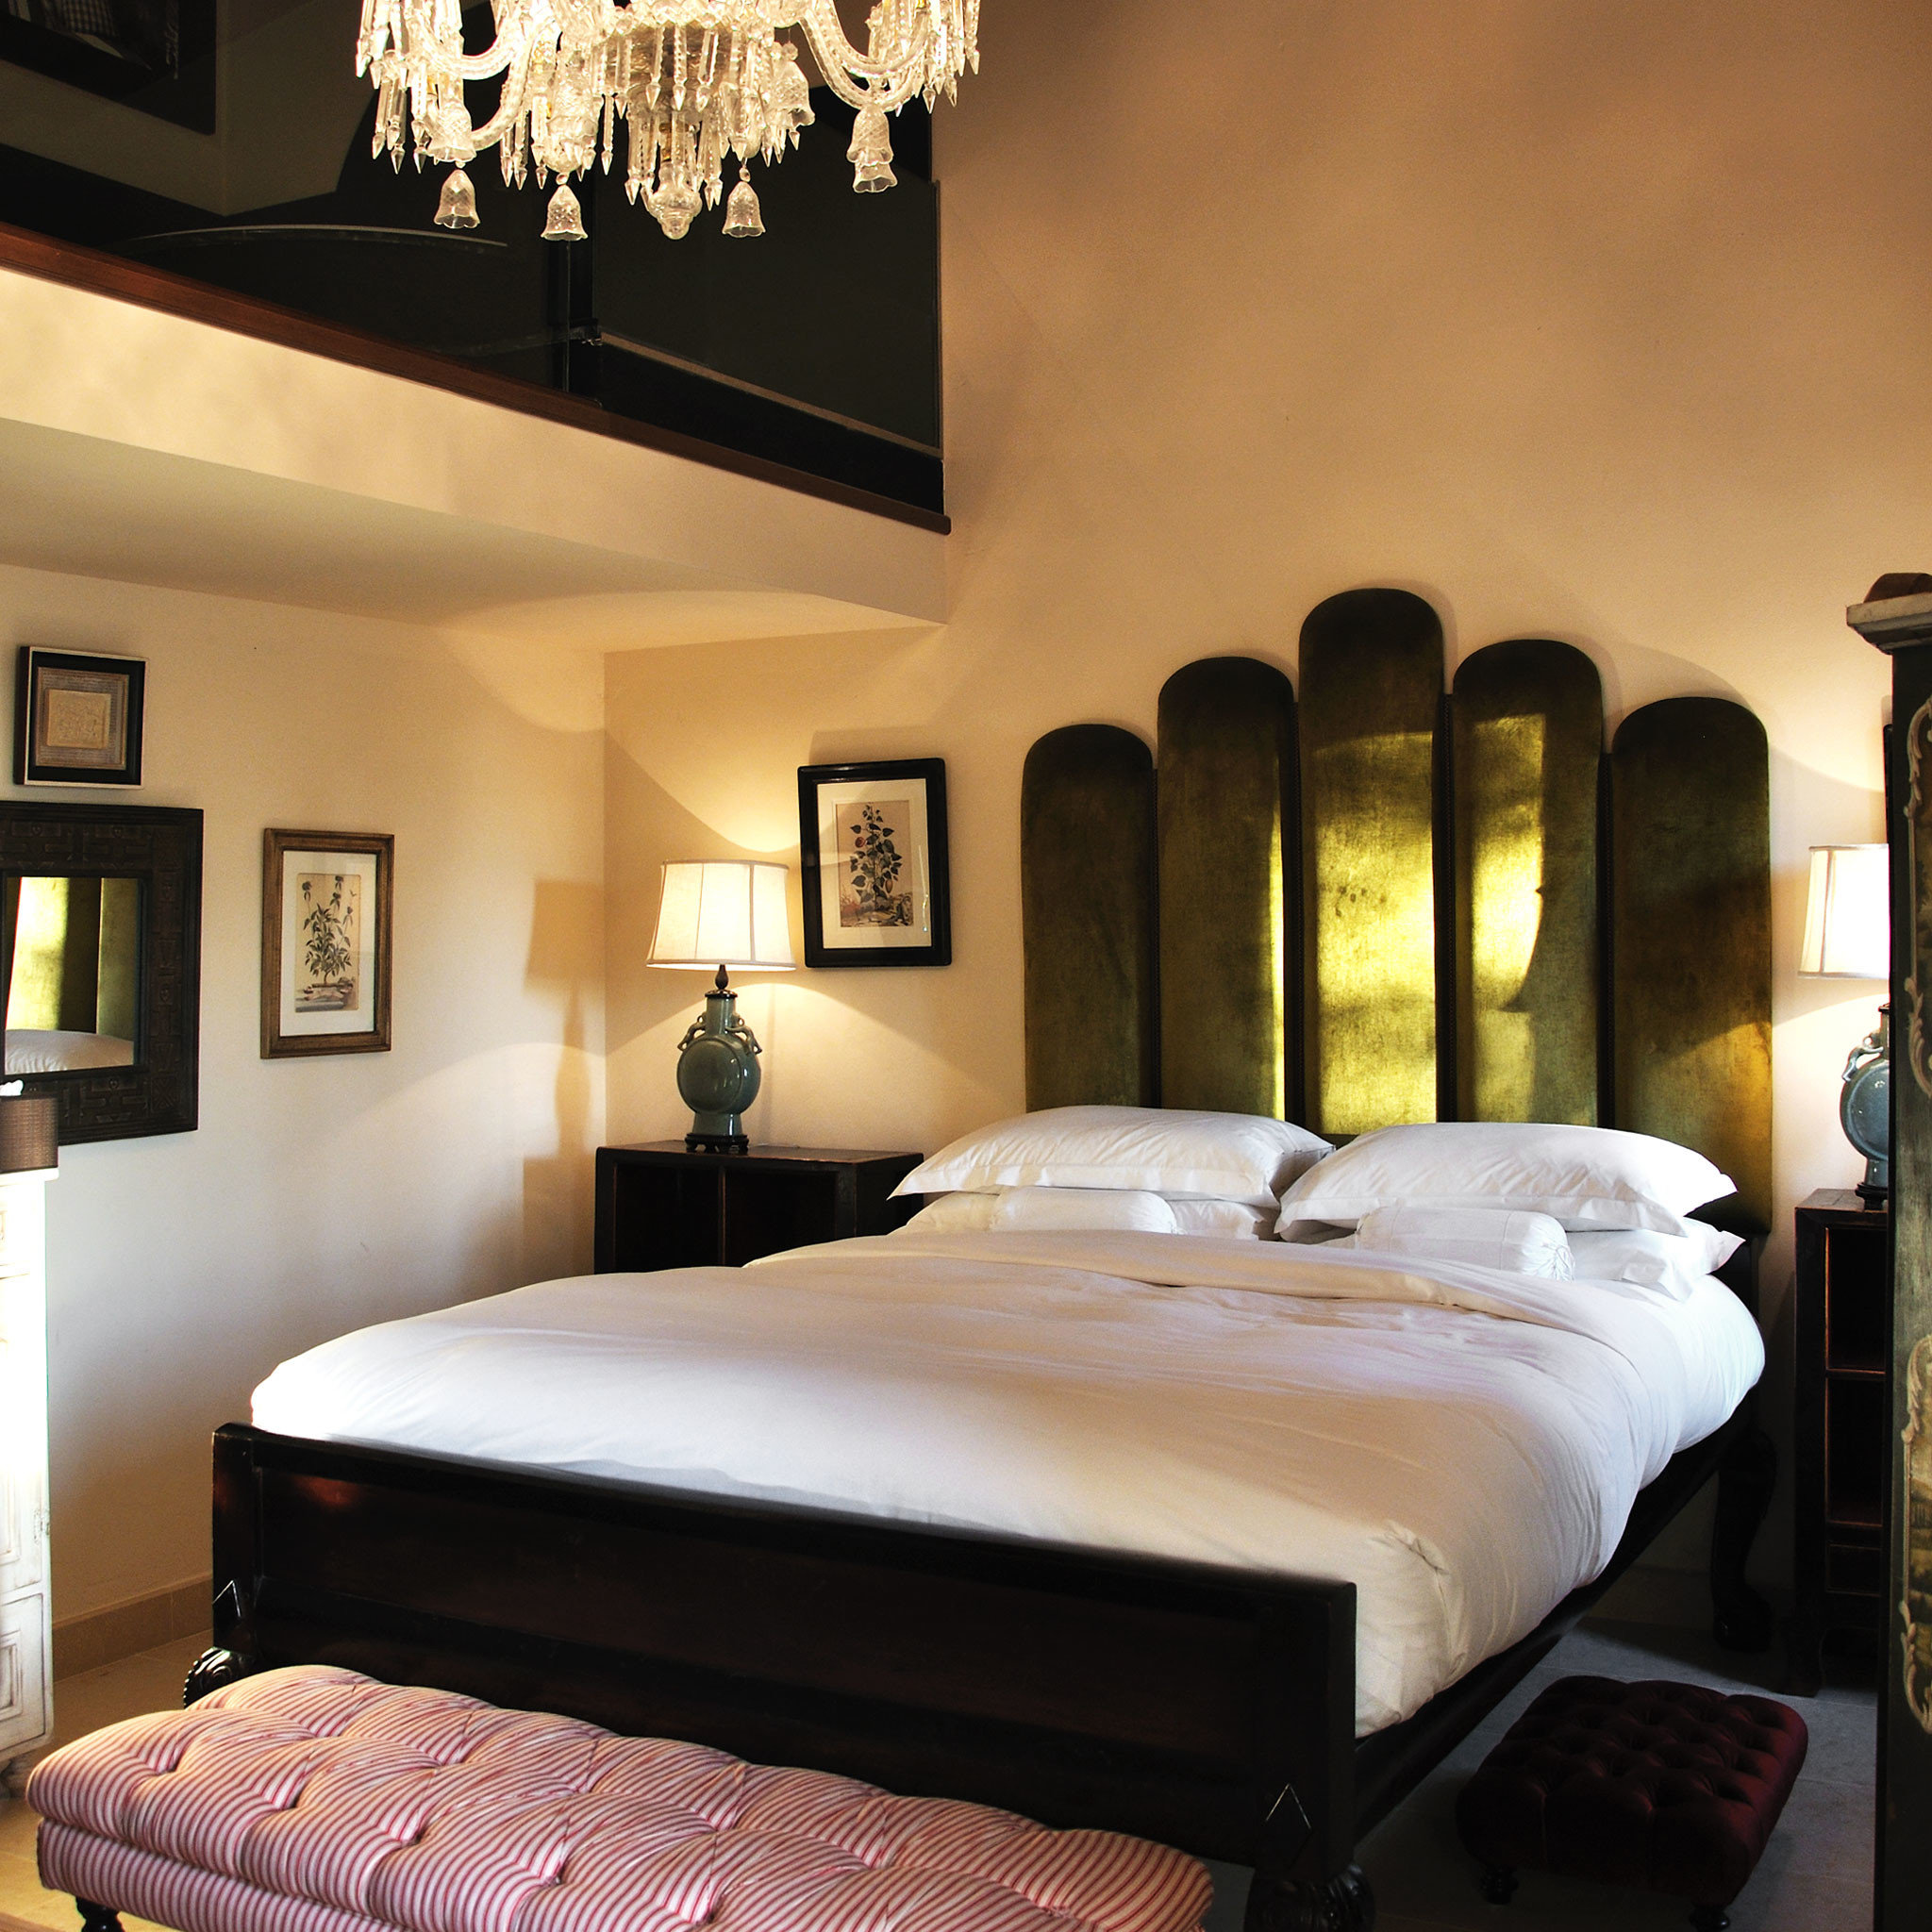 Bedroom Boutique Classic Country Elegant Historic Honeymoon Hotels Romance Romantic Winery wall indoor bed room property interior design hotel furniture estate bed frame bed sheet Suite living room ceiling decorated